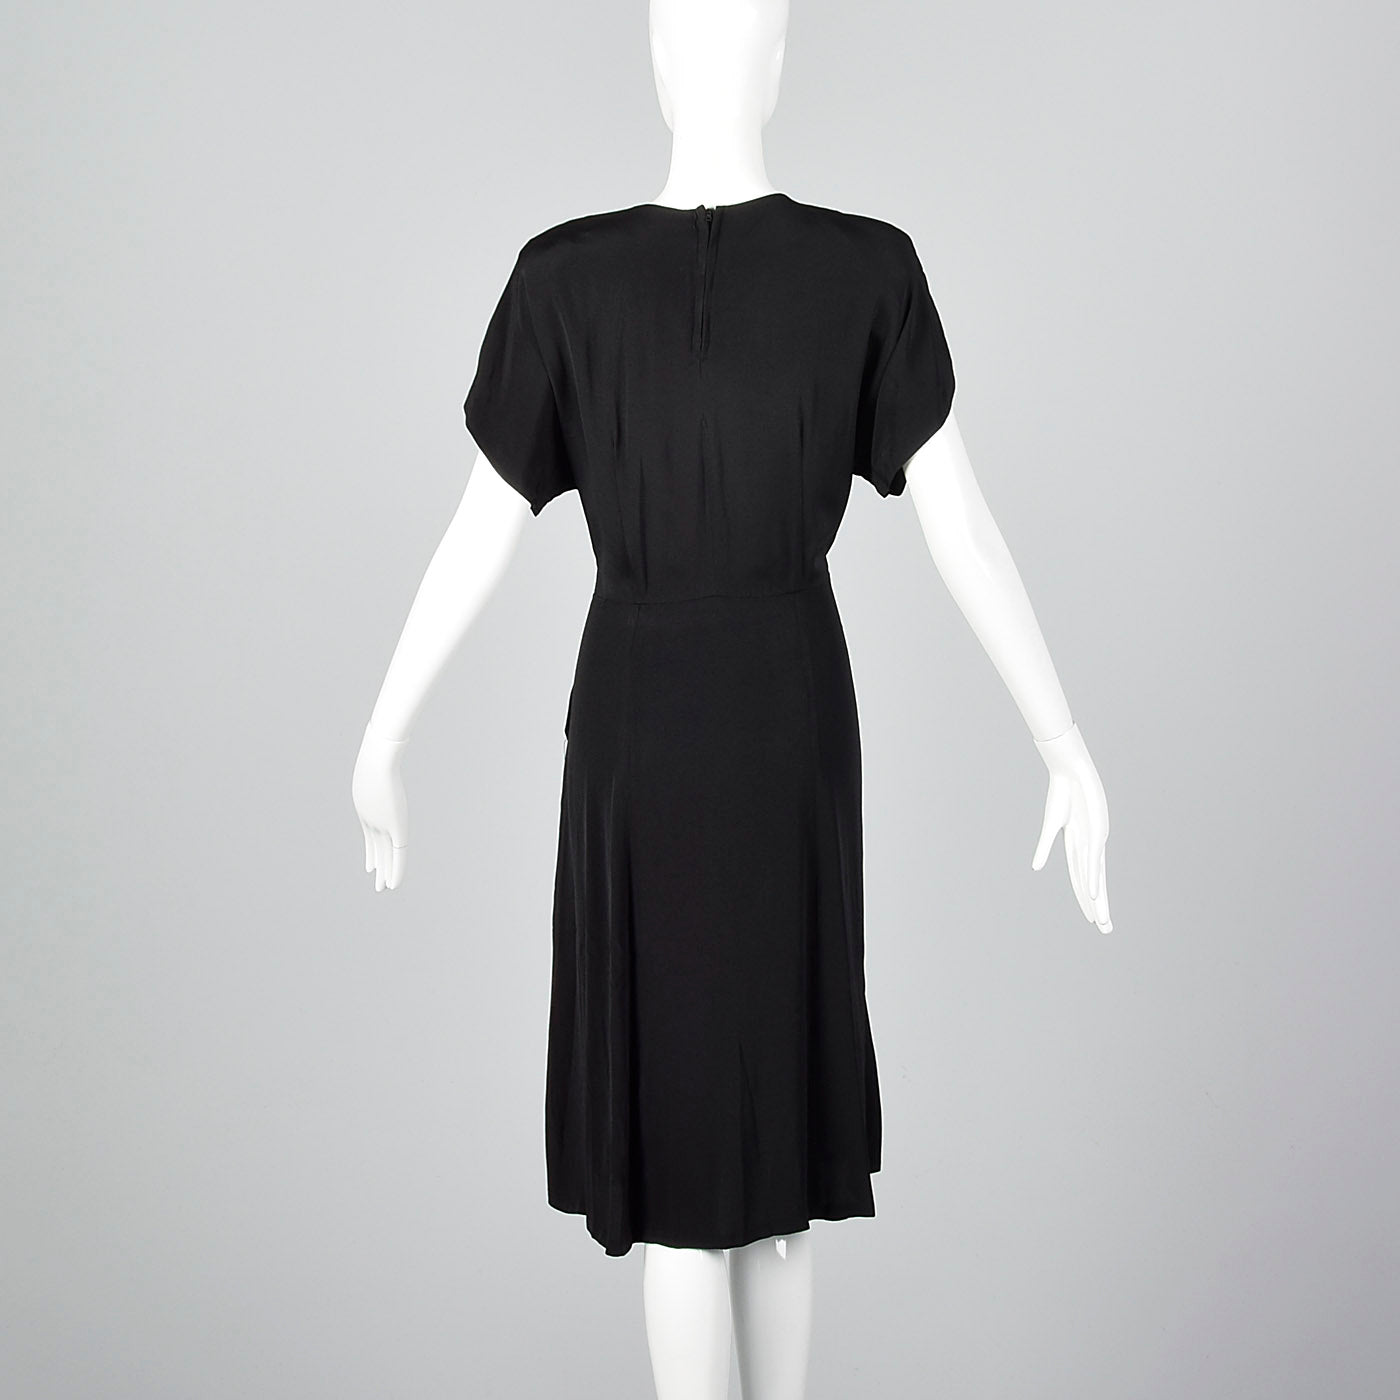 1940s Black Rayon Dress with Beaded Collar